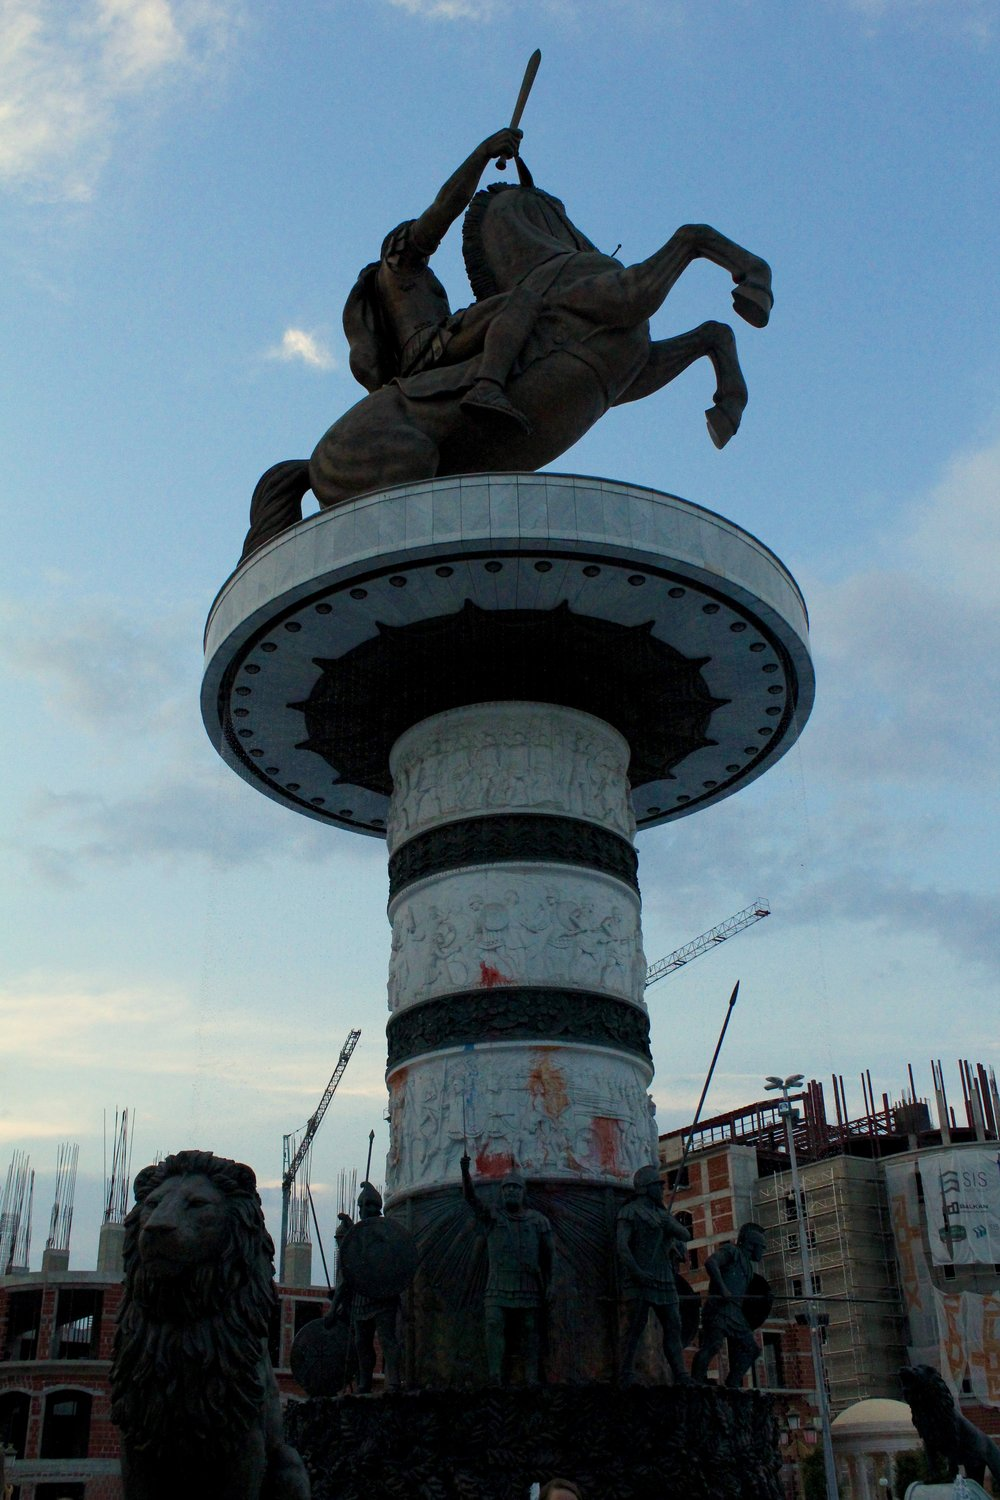 Paint on the base of a statue of Alexander the Great in Macedonia Square/ Плоштад Македонија